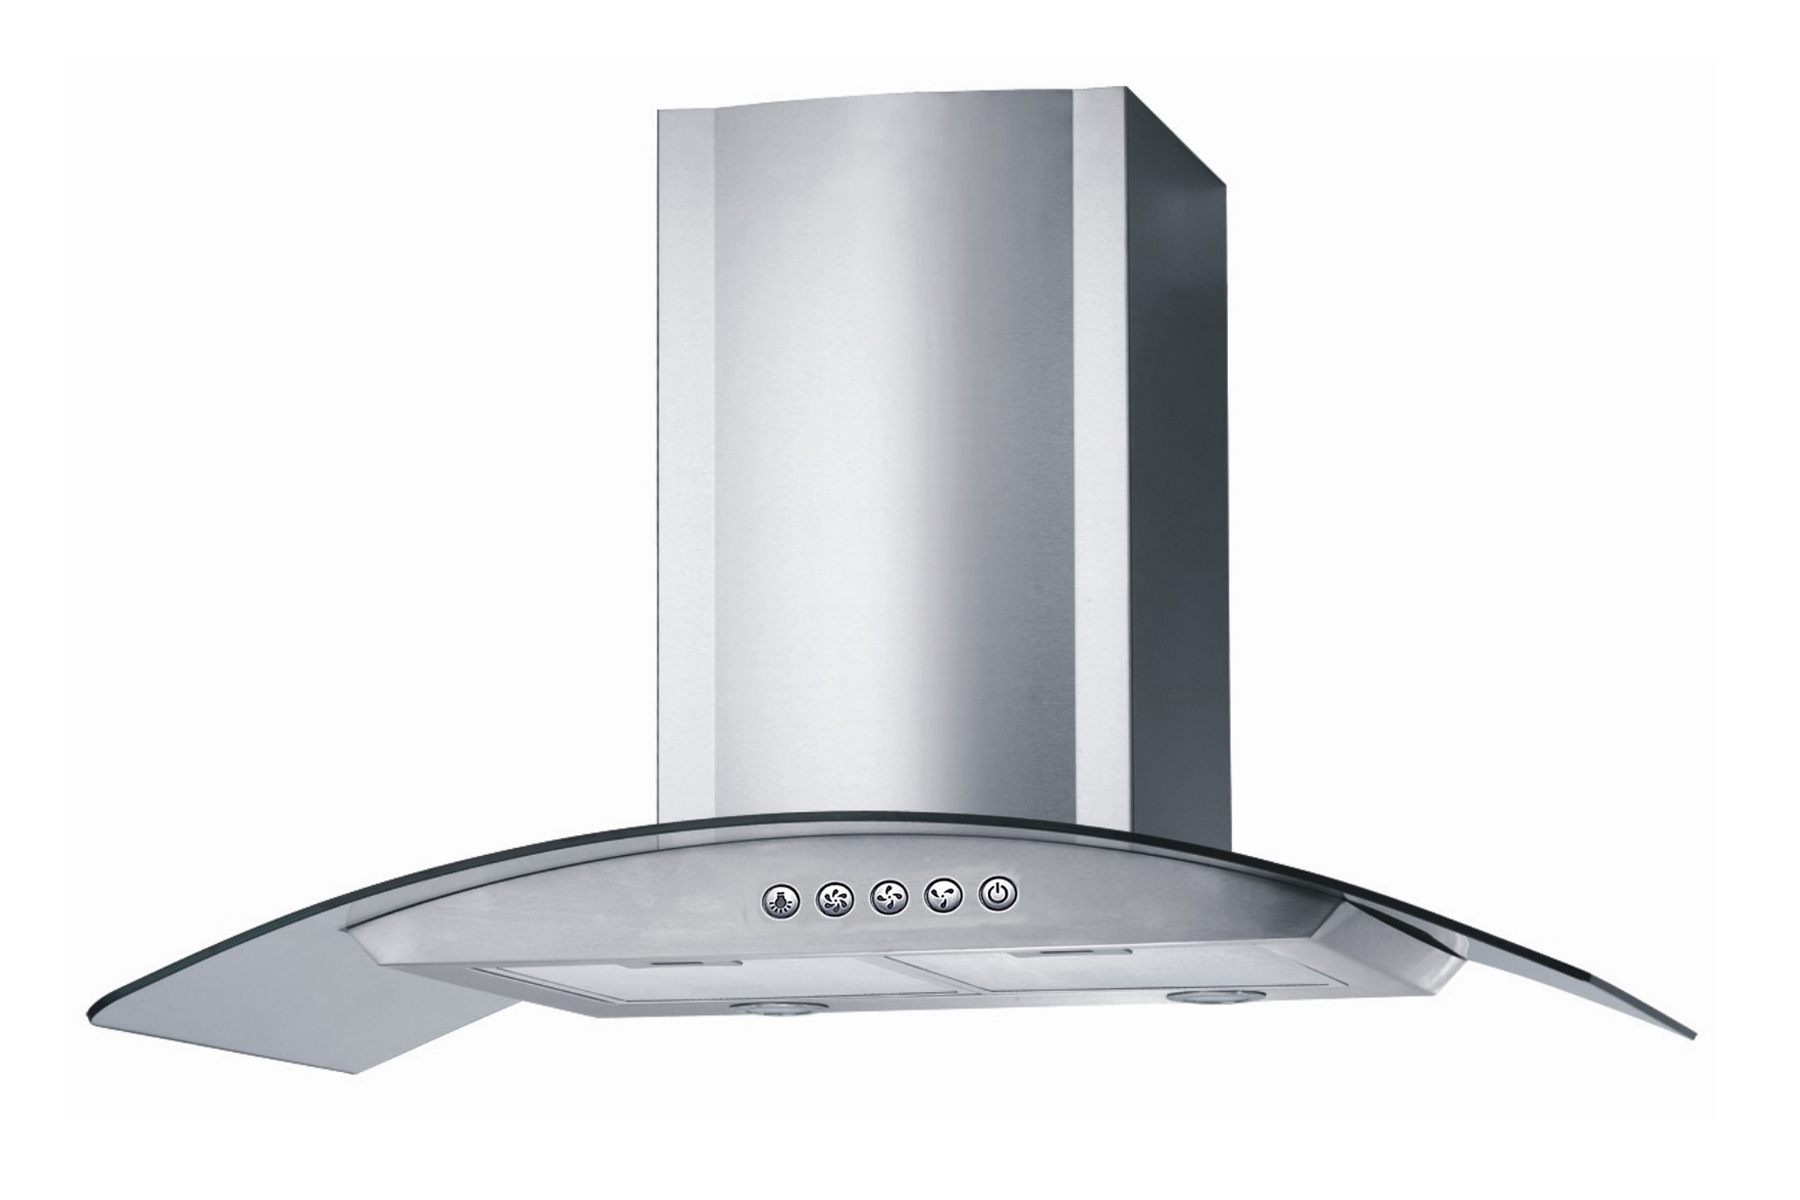 stainless steel range hood free charcoal filter kitchen range hoods